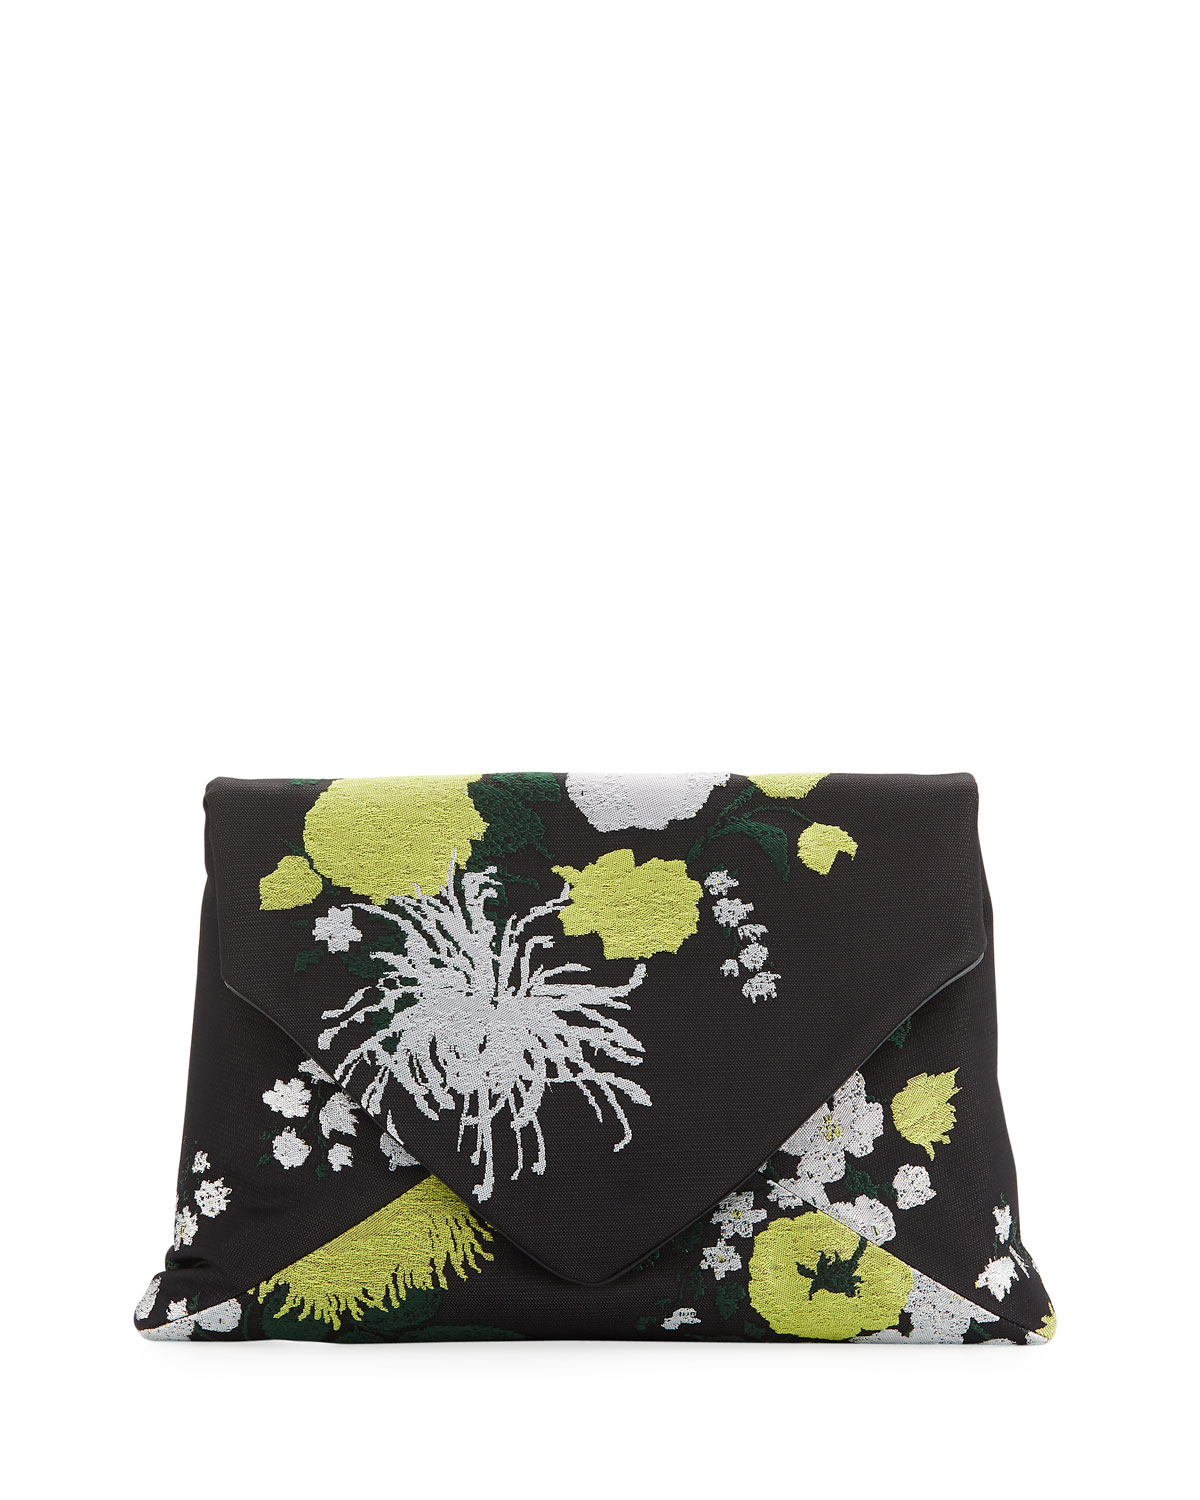 Embroidered Twill Envelope Clutch Bag